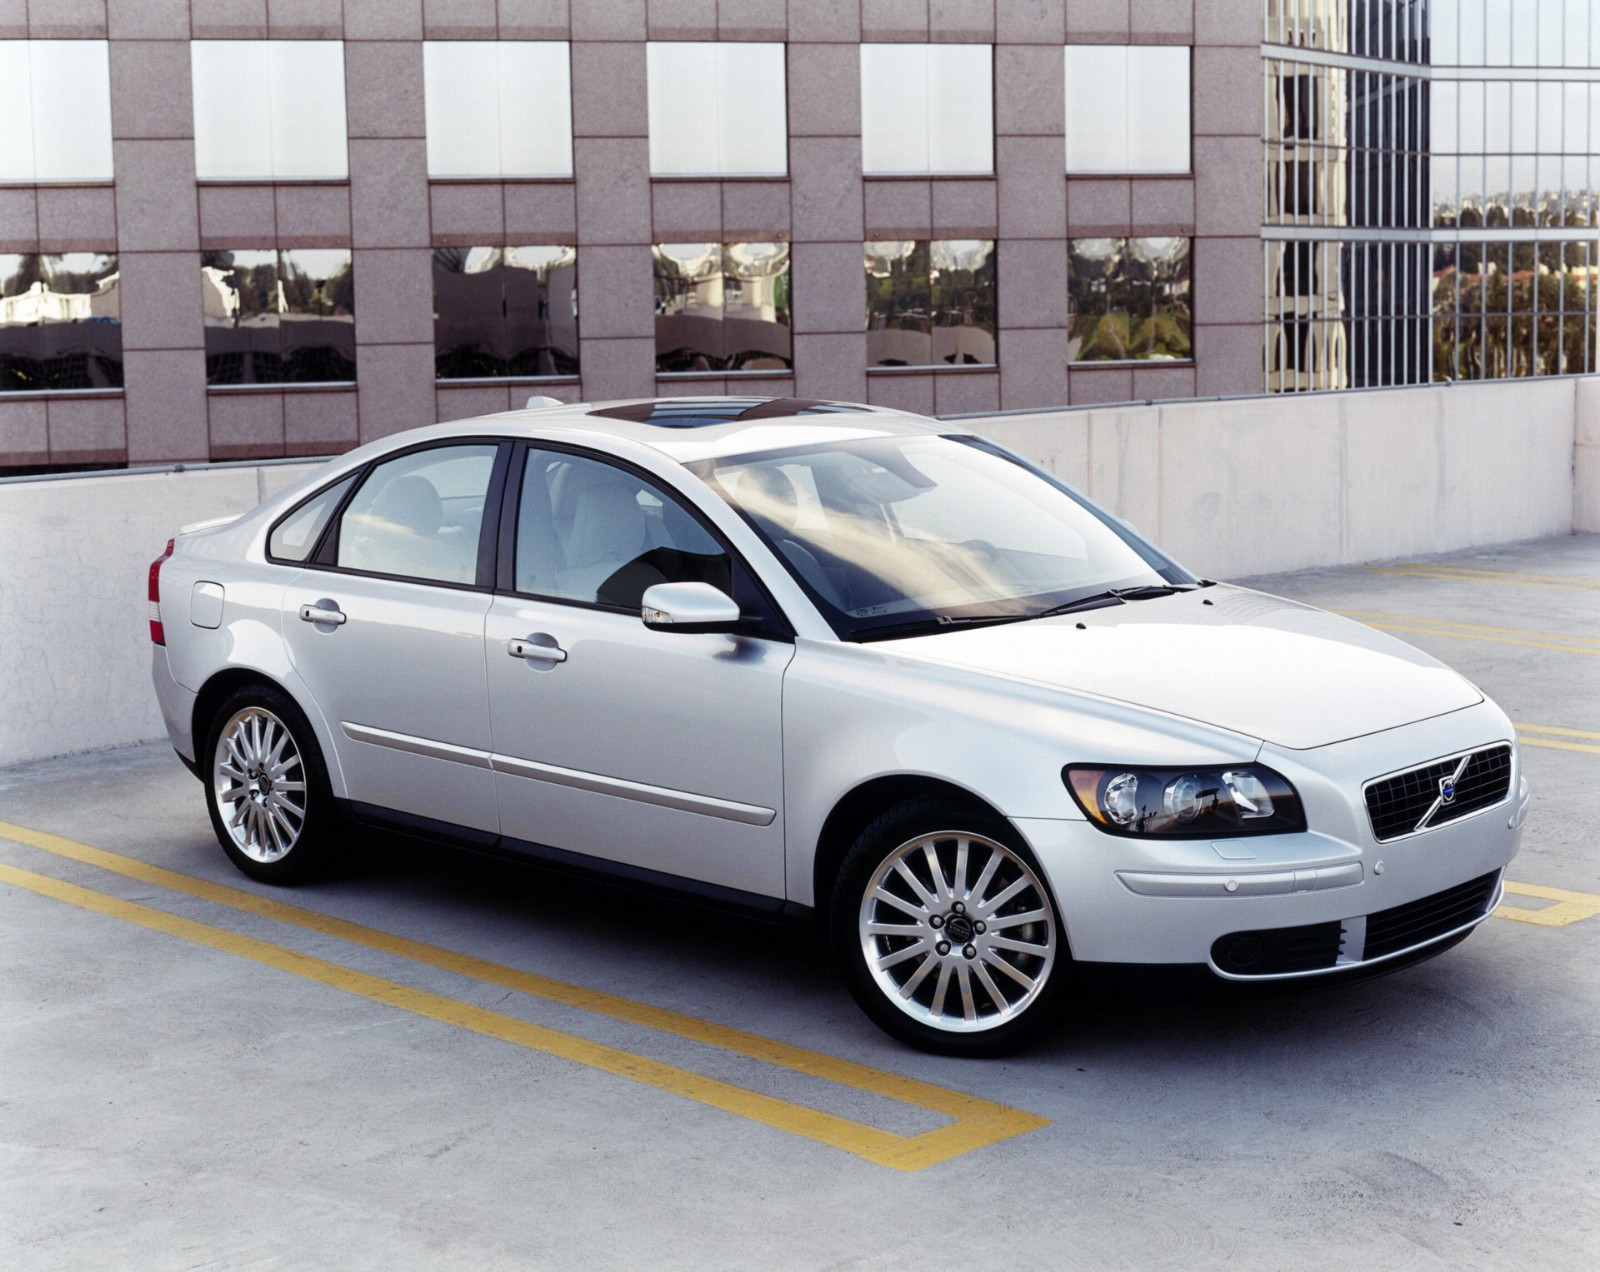 2007 Volvo S40 Image Https Www Conceptcarz Com Images Volvo Volvo S40 Manu 07 01 1600 Jpg